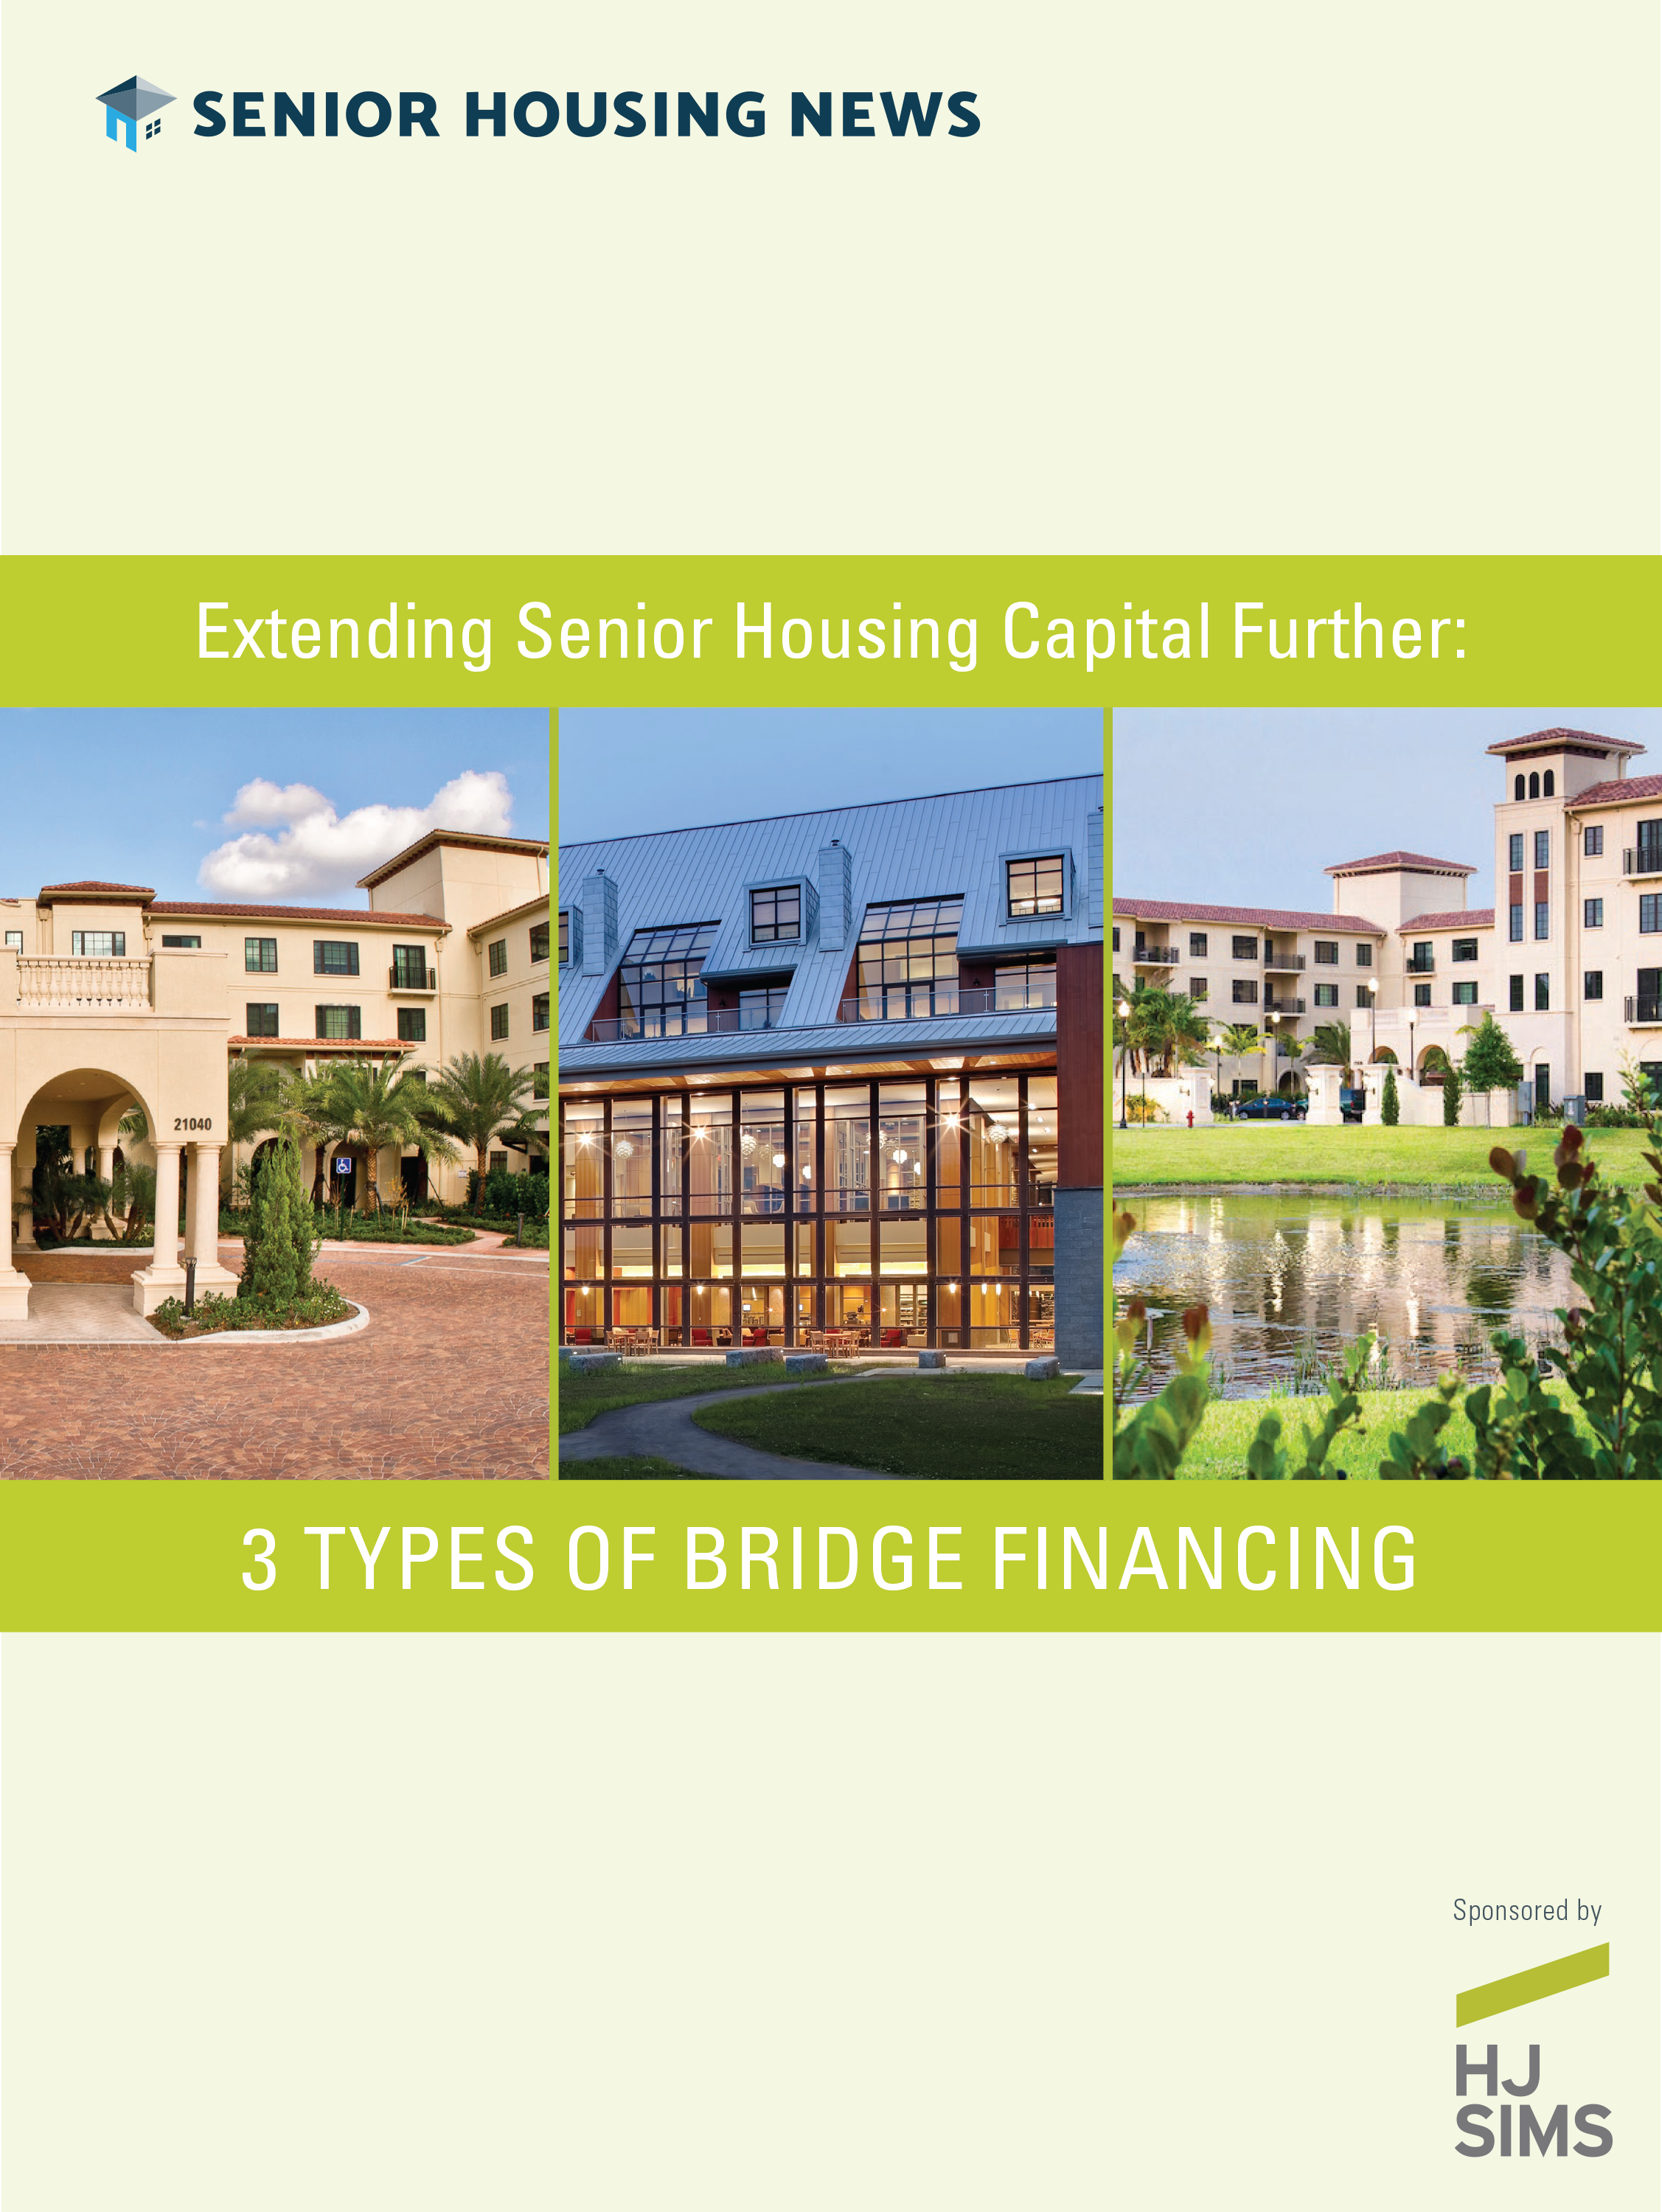 [White Paper] Extending Senior Housing Capital Further: 3 Types of Bridge Financing